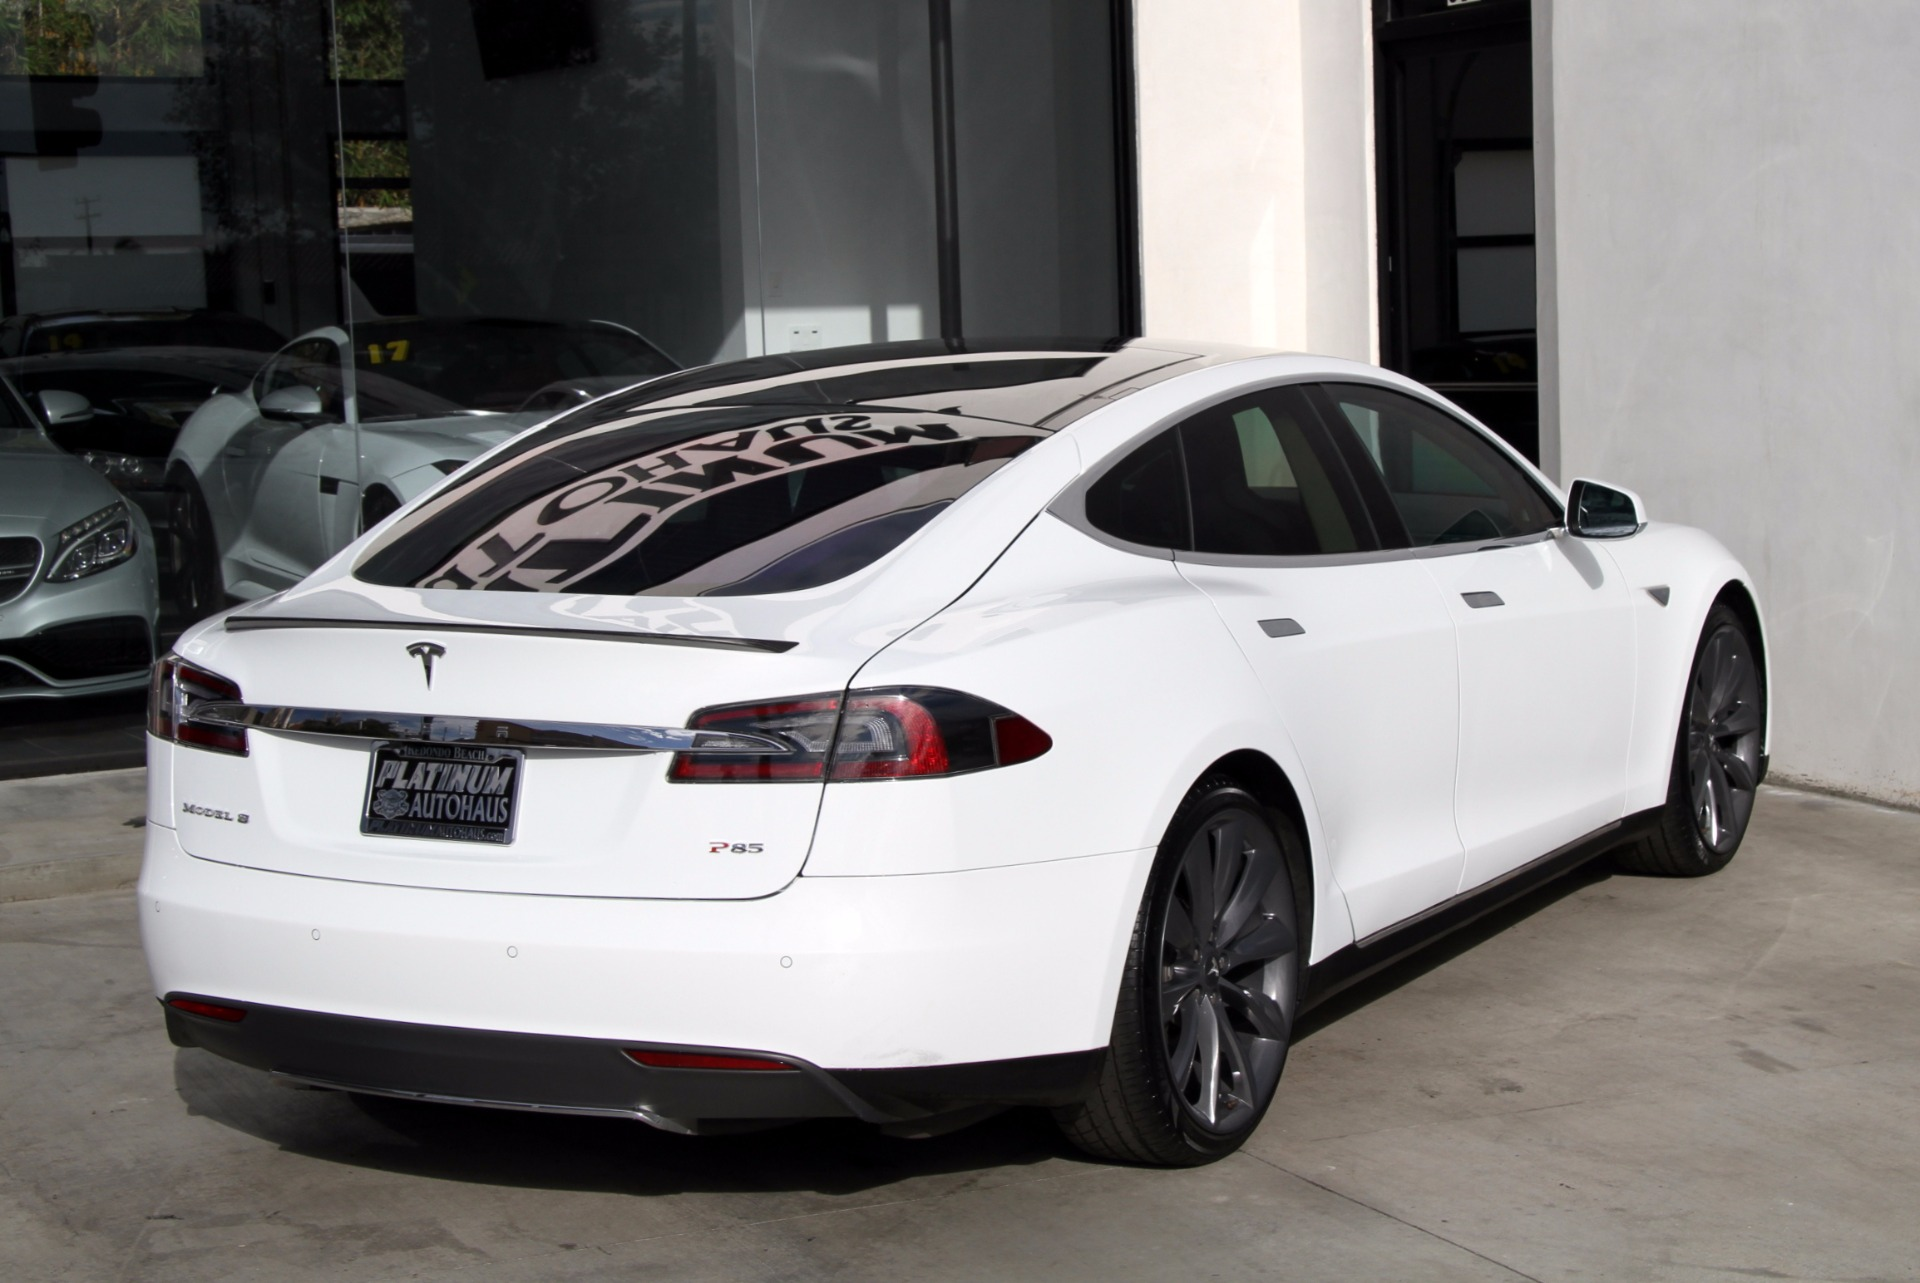 2013 tesla model s performance p85 msrp 119 620 stock 6029 for sale near redondo beach. Black Bedroom Furniture Sets. Home Design Ideas